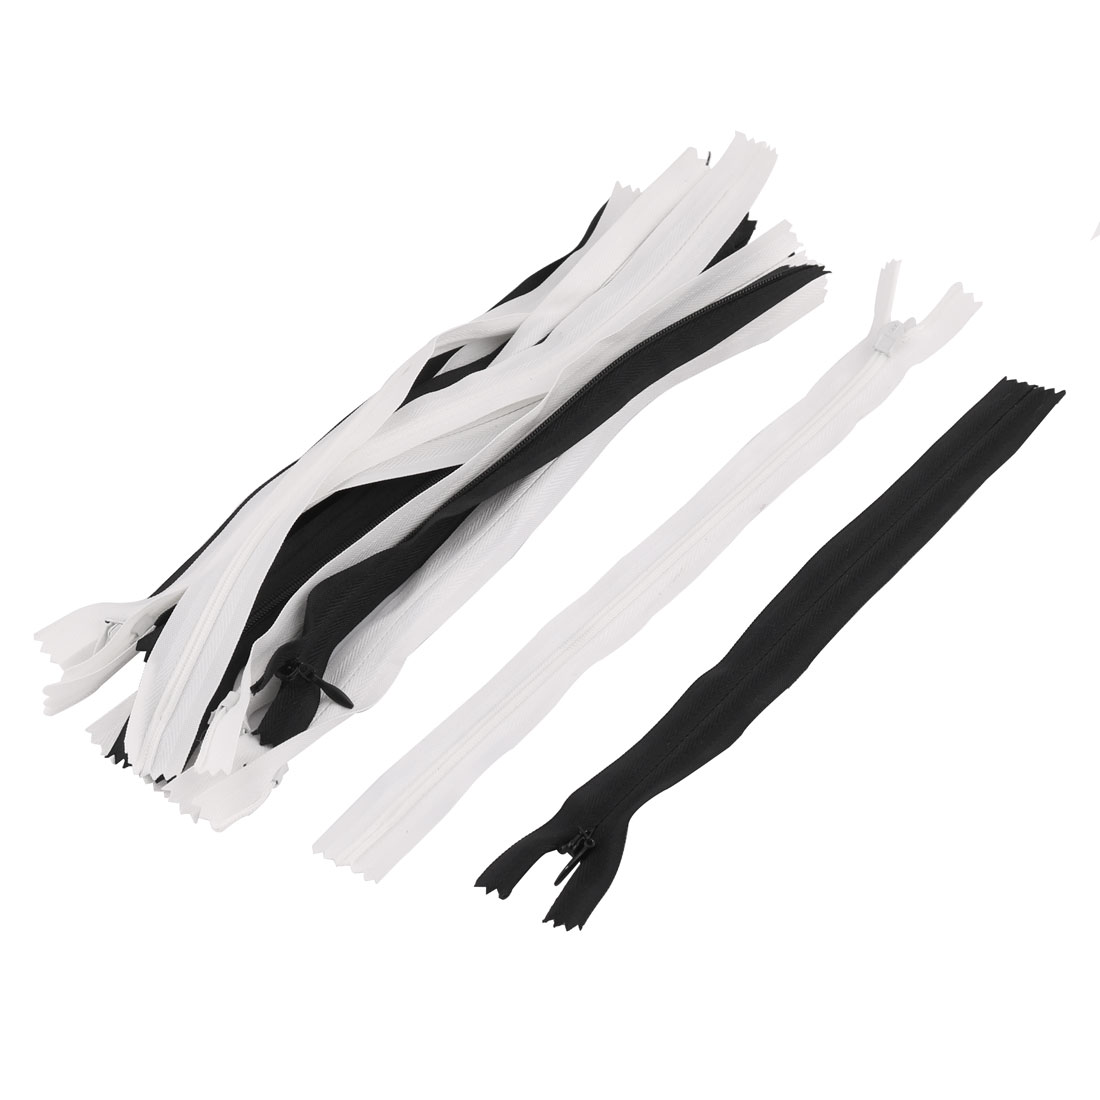 Tailor Sewing Nylon Invisible Smooth Zippers Mix Size Black White 16pcs